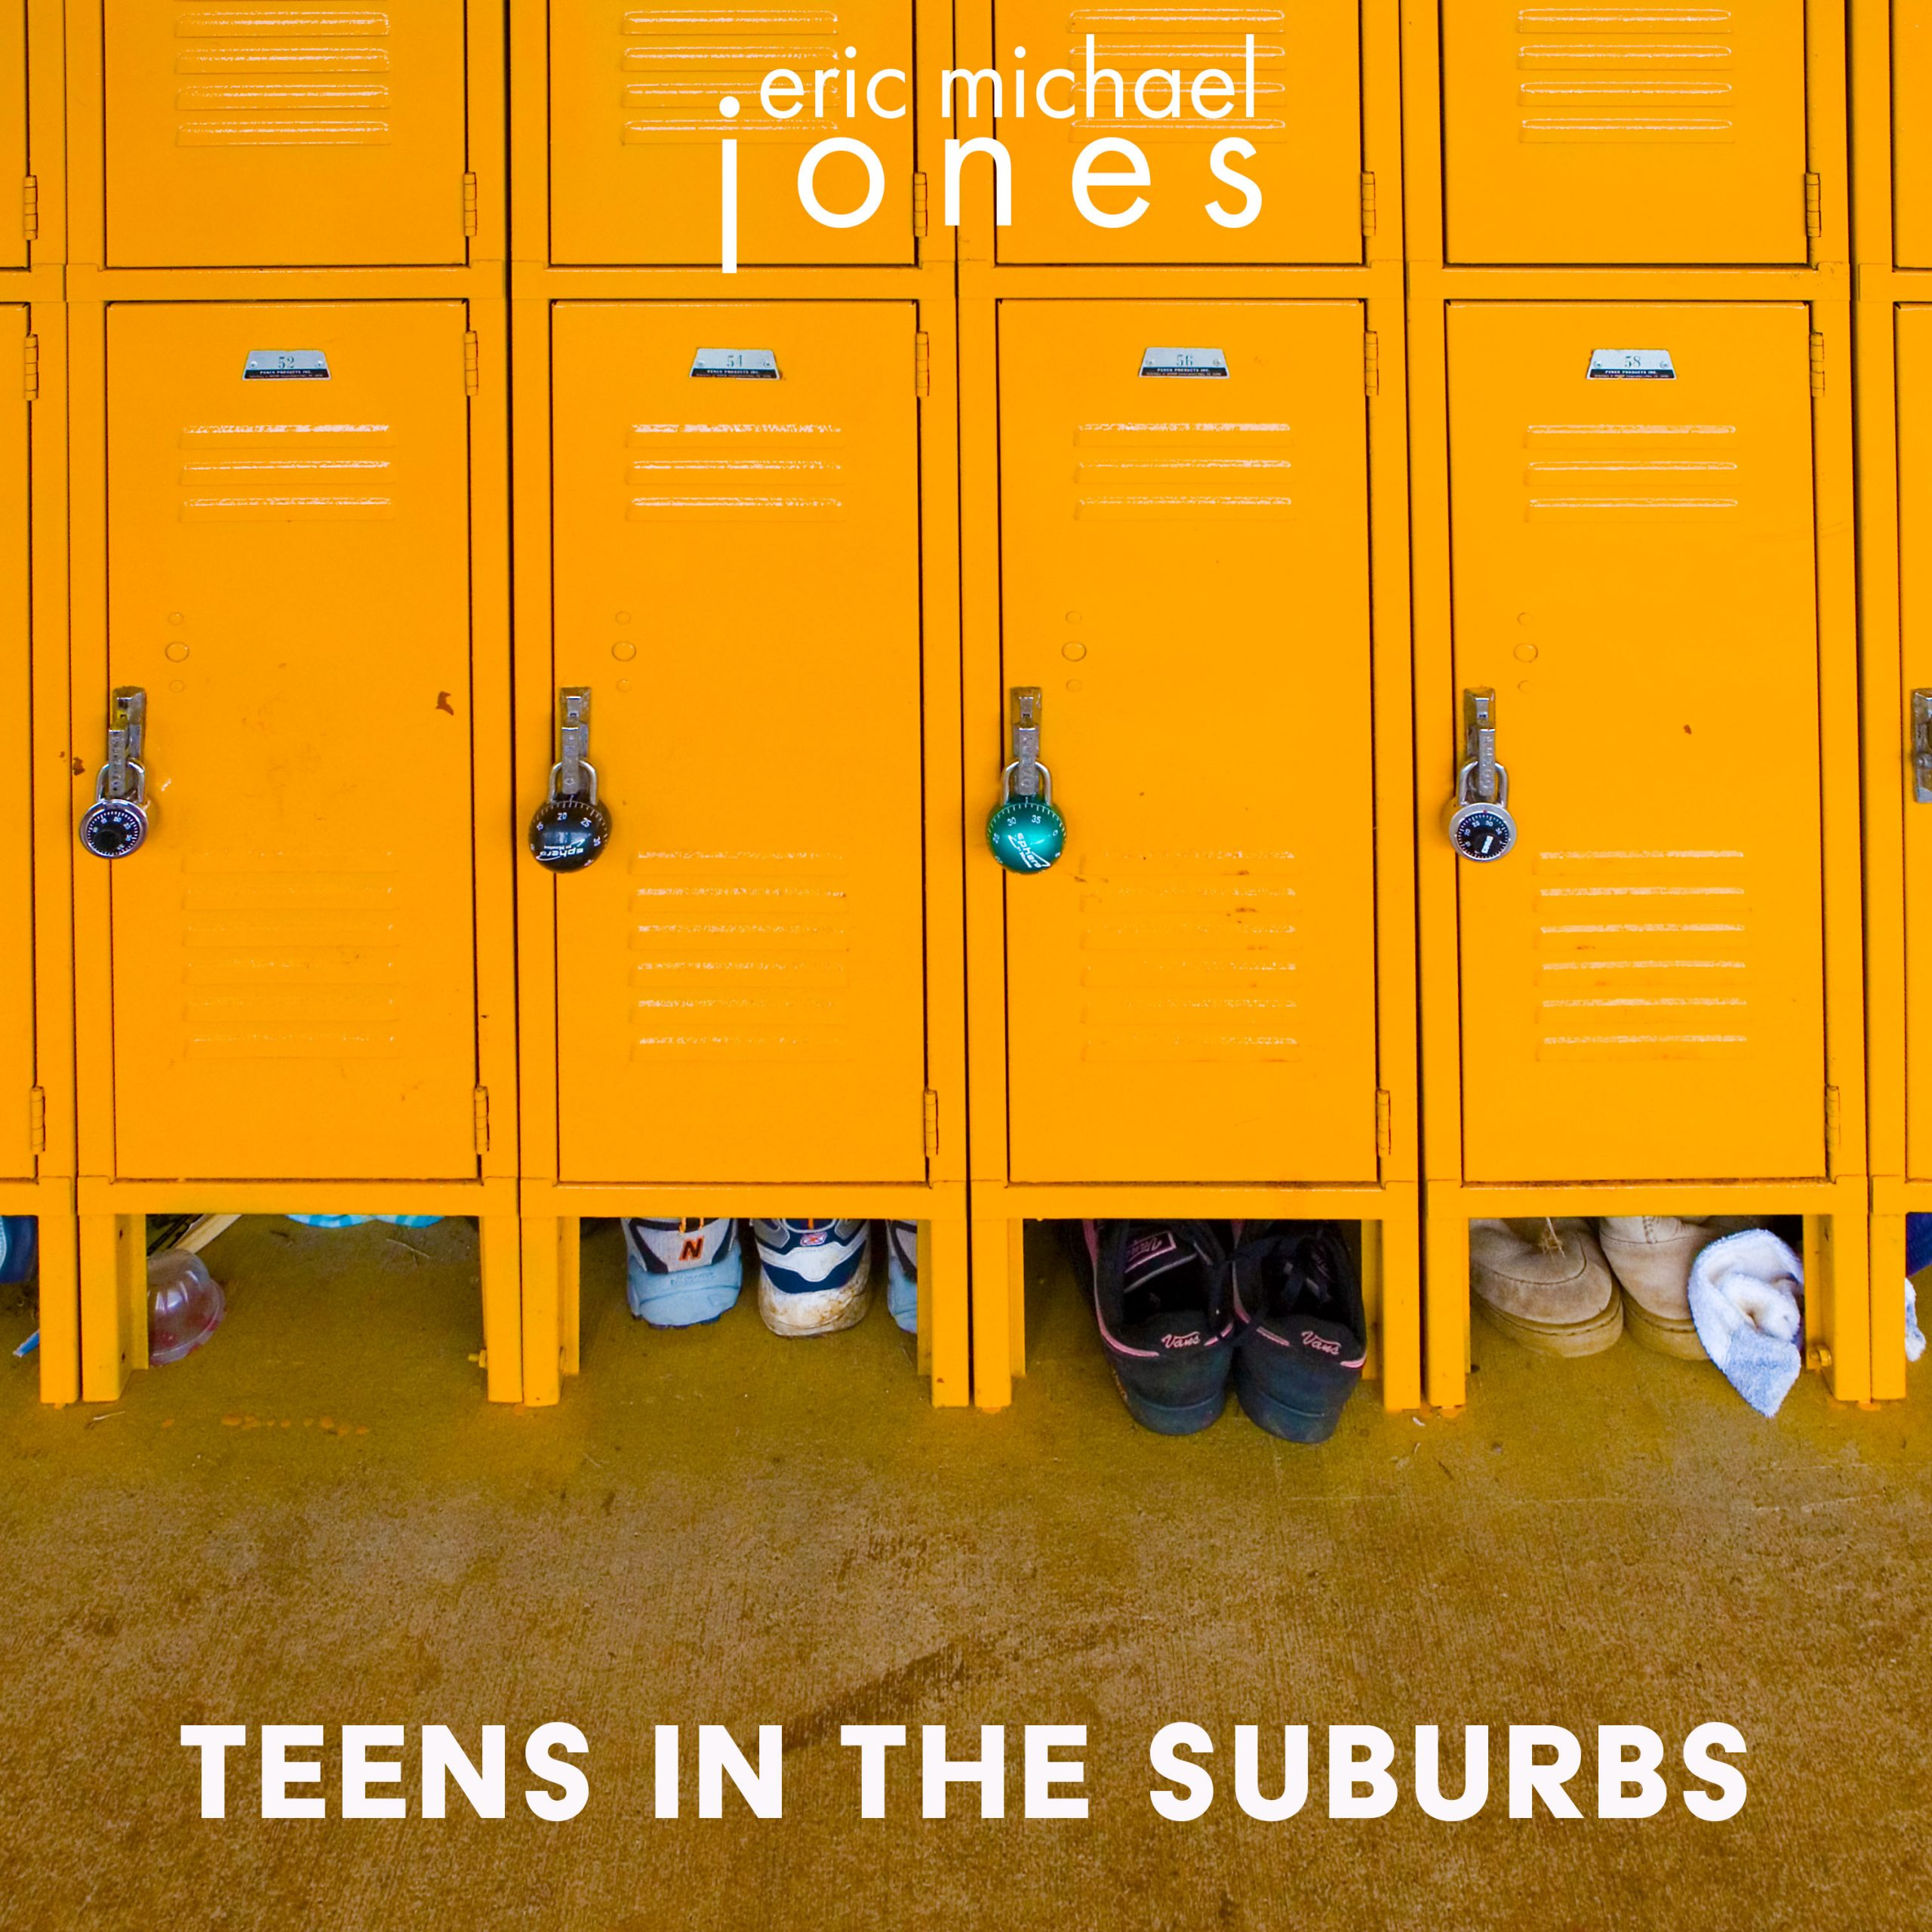 Cover art for Teens In The Suburbs, showing a row of yellow school lockers